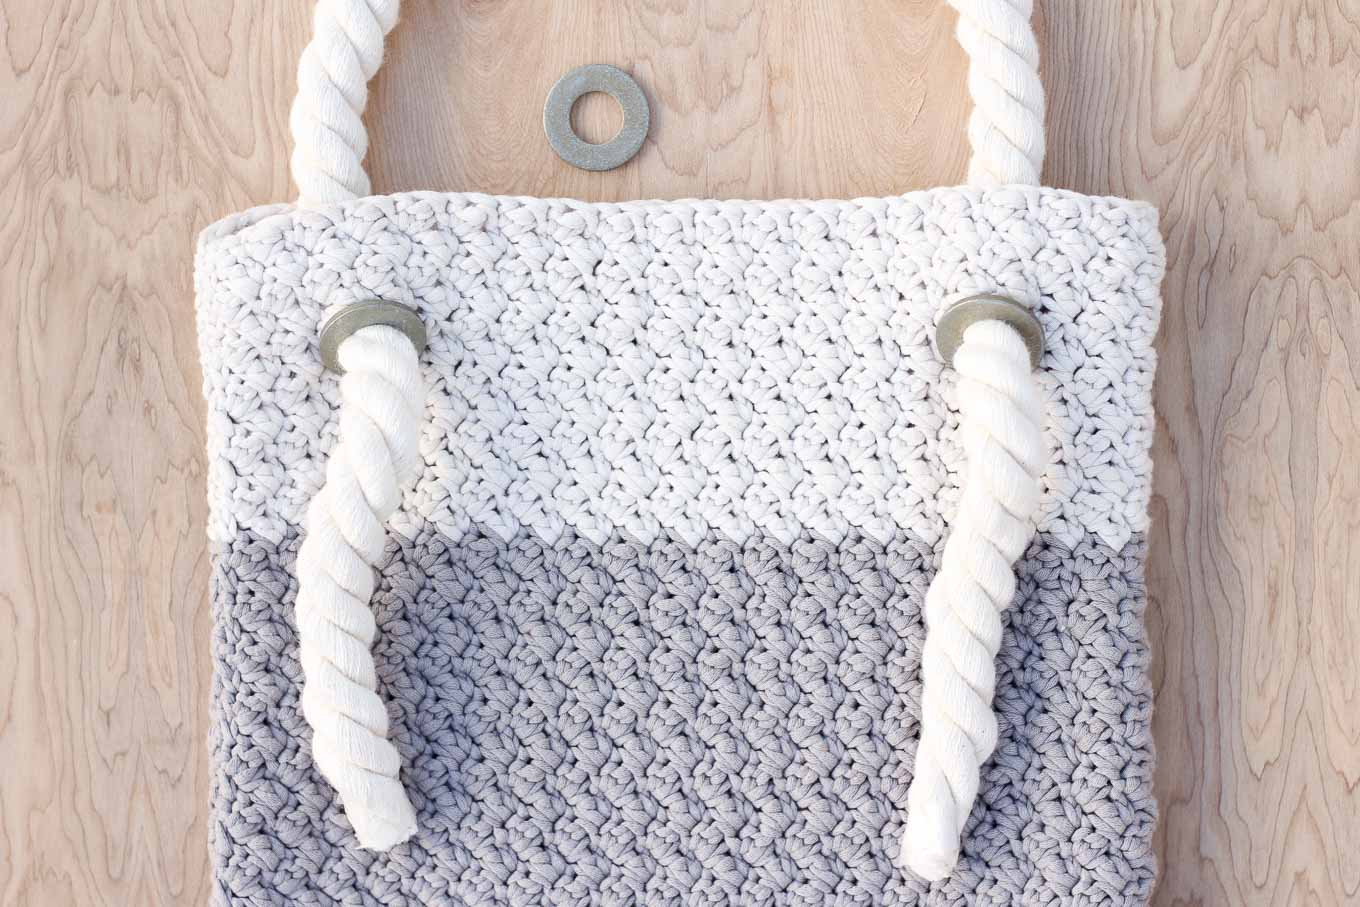 Crochet Bag Pattern For Beginners : This free crochet bag pattern for beginners is deceptively simple ...